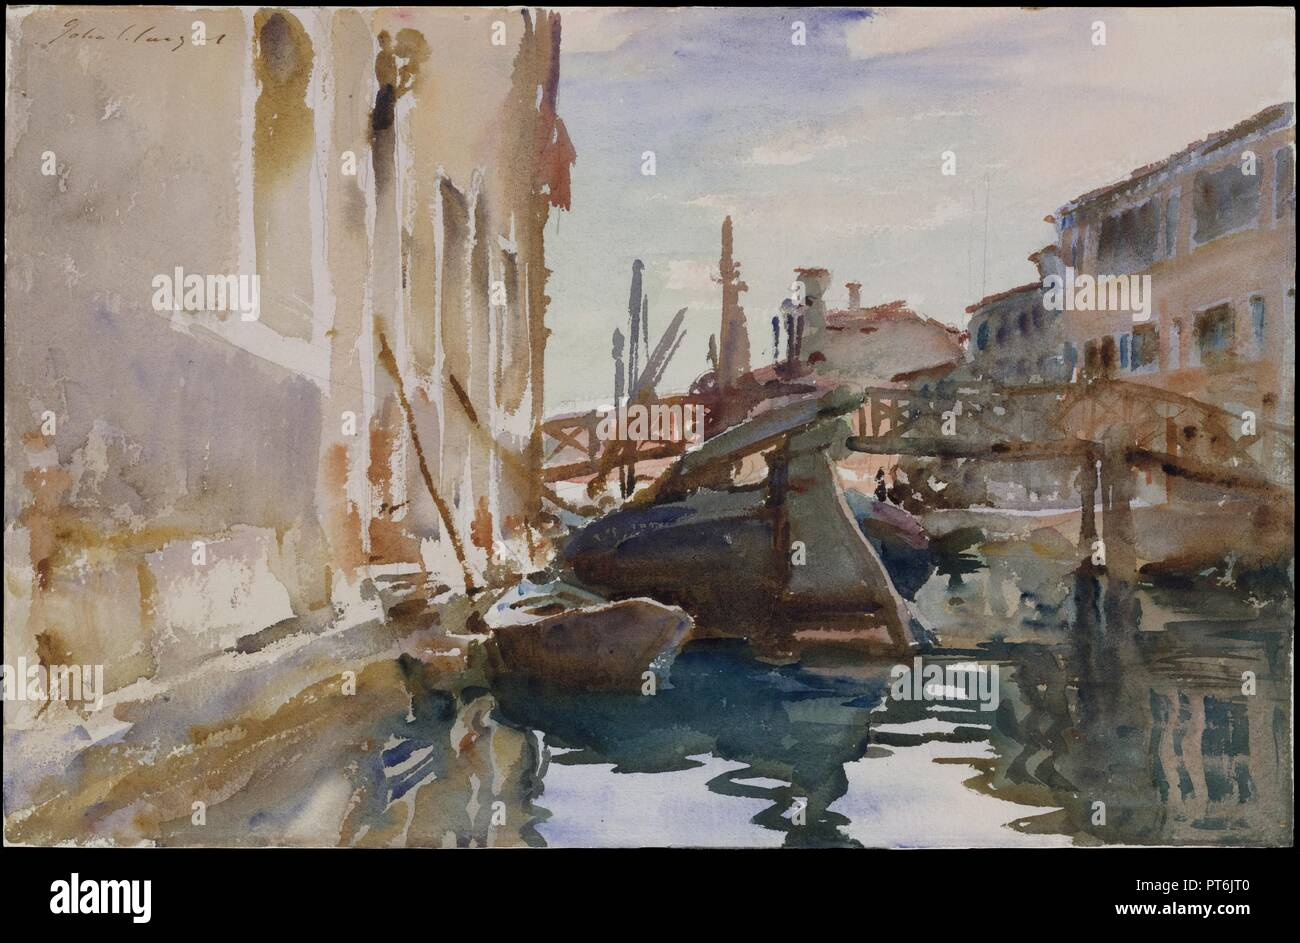 Giudecca. Artist: John Singer Sargent (American, Florence 1856-1925 London). Dimensions: 13 1/16 x 20 15/16 in. (33.2 x 53.2 cm). Date: 1913 (?).  To the south of Venice, a wide canal separates Giudecca, eight small islands, from the rest of the city. A picturesque charm has long been associated with Giudecca, attracting artists for many centuries--both Francesco Guardi (1712-1793) and Joseph Mallord William Turner (1775-1851) painted views of it. However, their images almost always include recognizable landmarks. In his rendering, Sargent avoids identifiable Venetian monuments in recording th Stock Photo